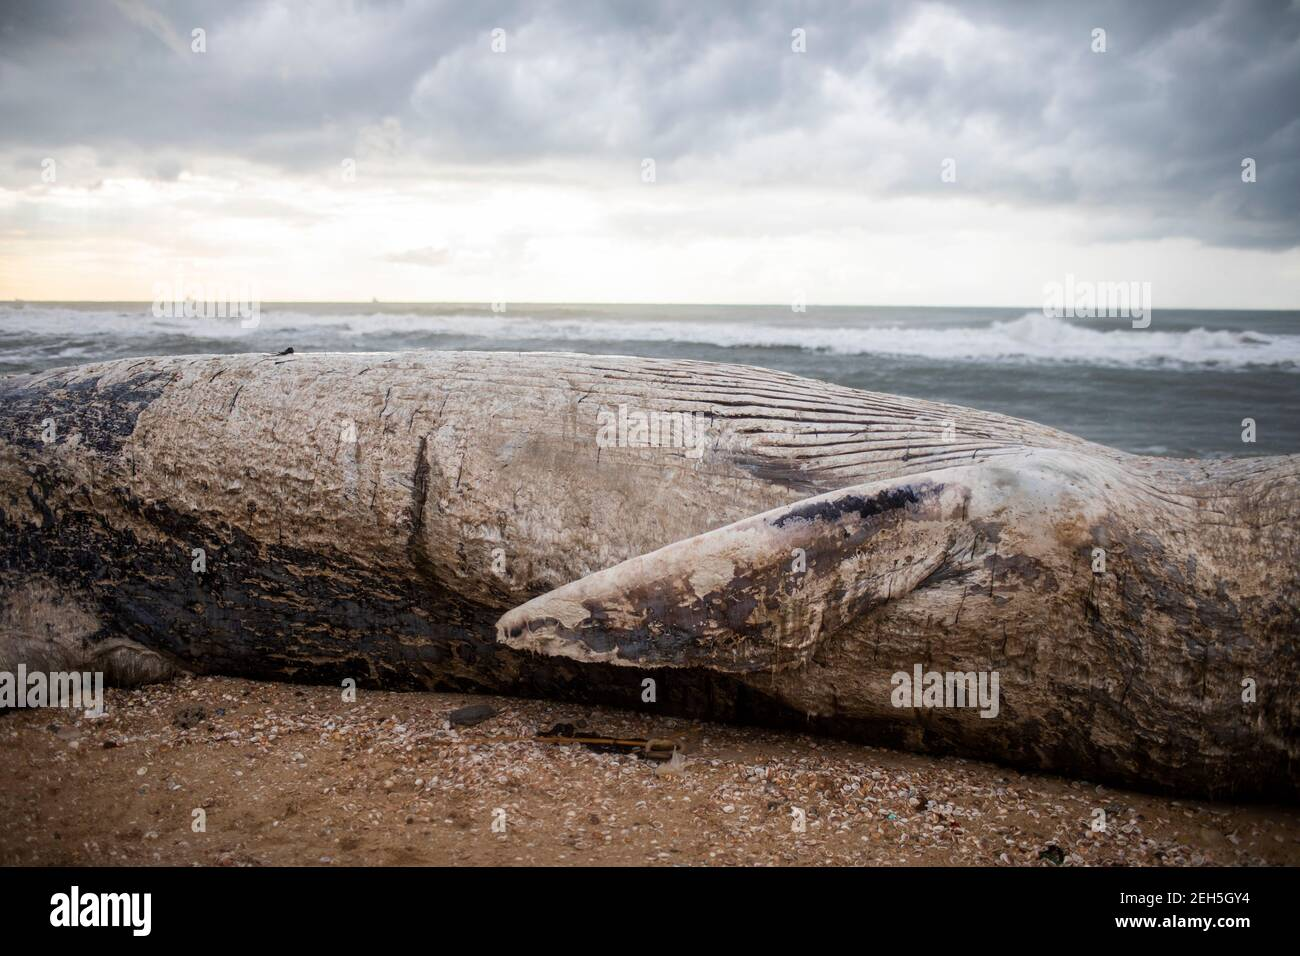 Nitzanim Reserve, Israel. 19th Feb, 2021. A general view of a dead fin whale calf that washed up on a beach south of Tel Aviv. According to Israeli officials, it wasn't clear what caused the death. Credit: Ilia Yefimovich/dpa/Alamy Live News Stock Photo